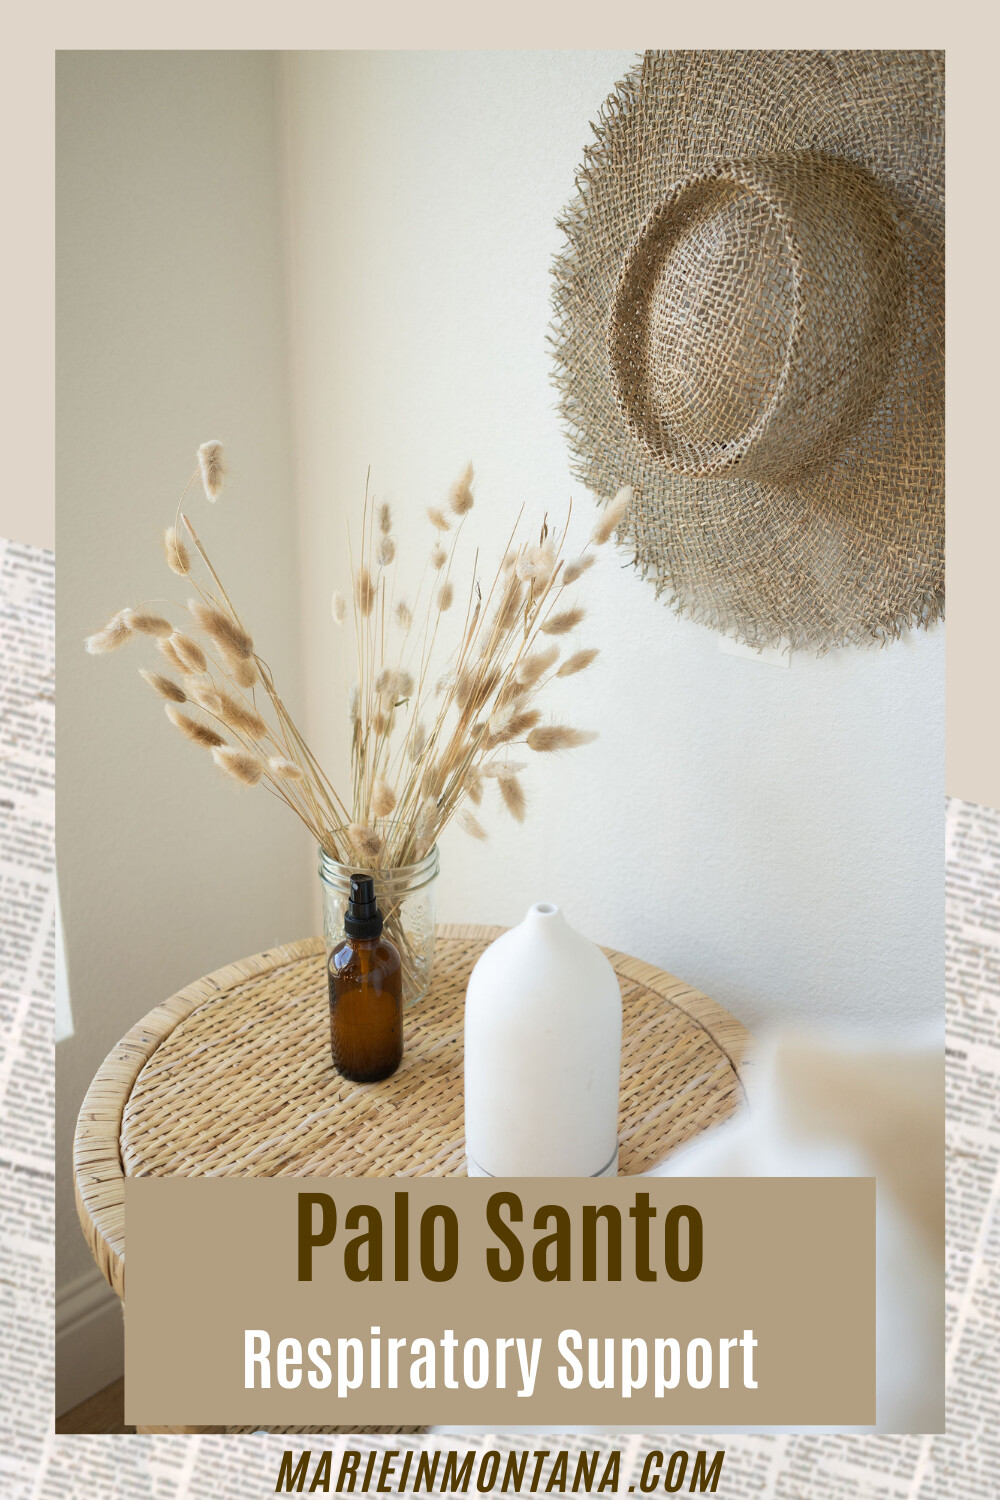 Palo Santo For Respiratory Support